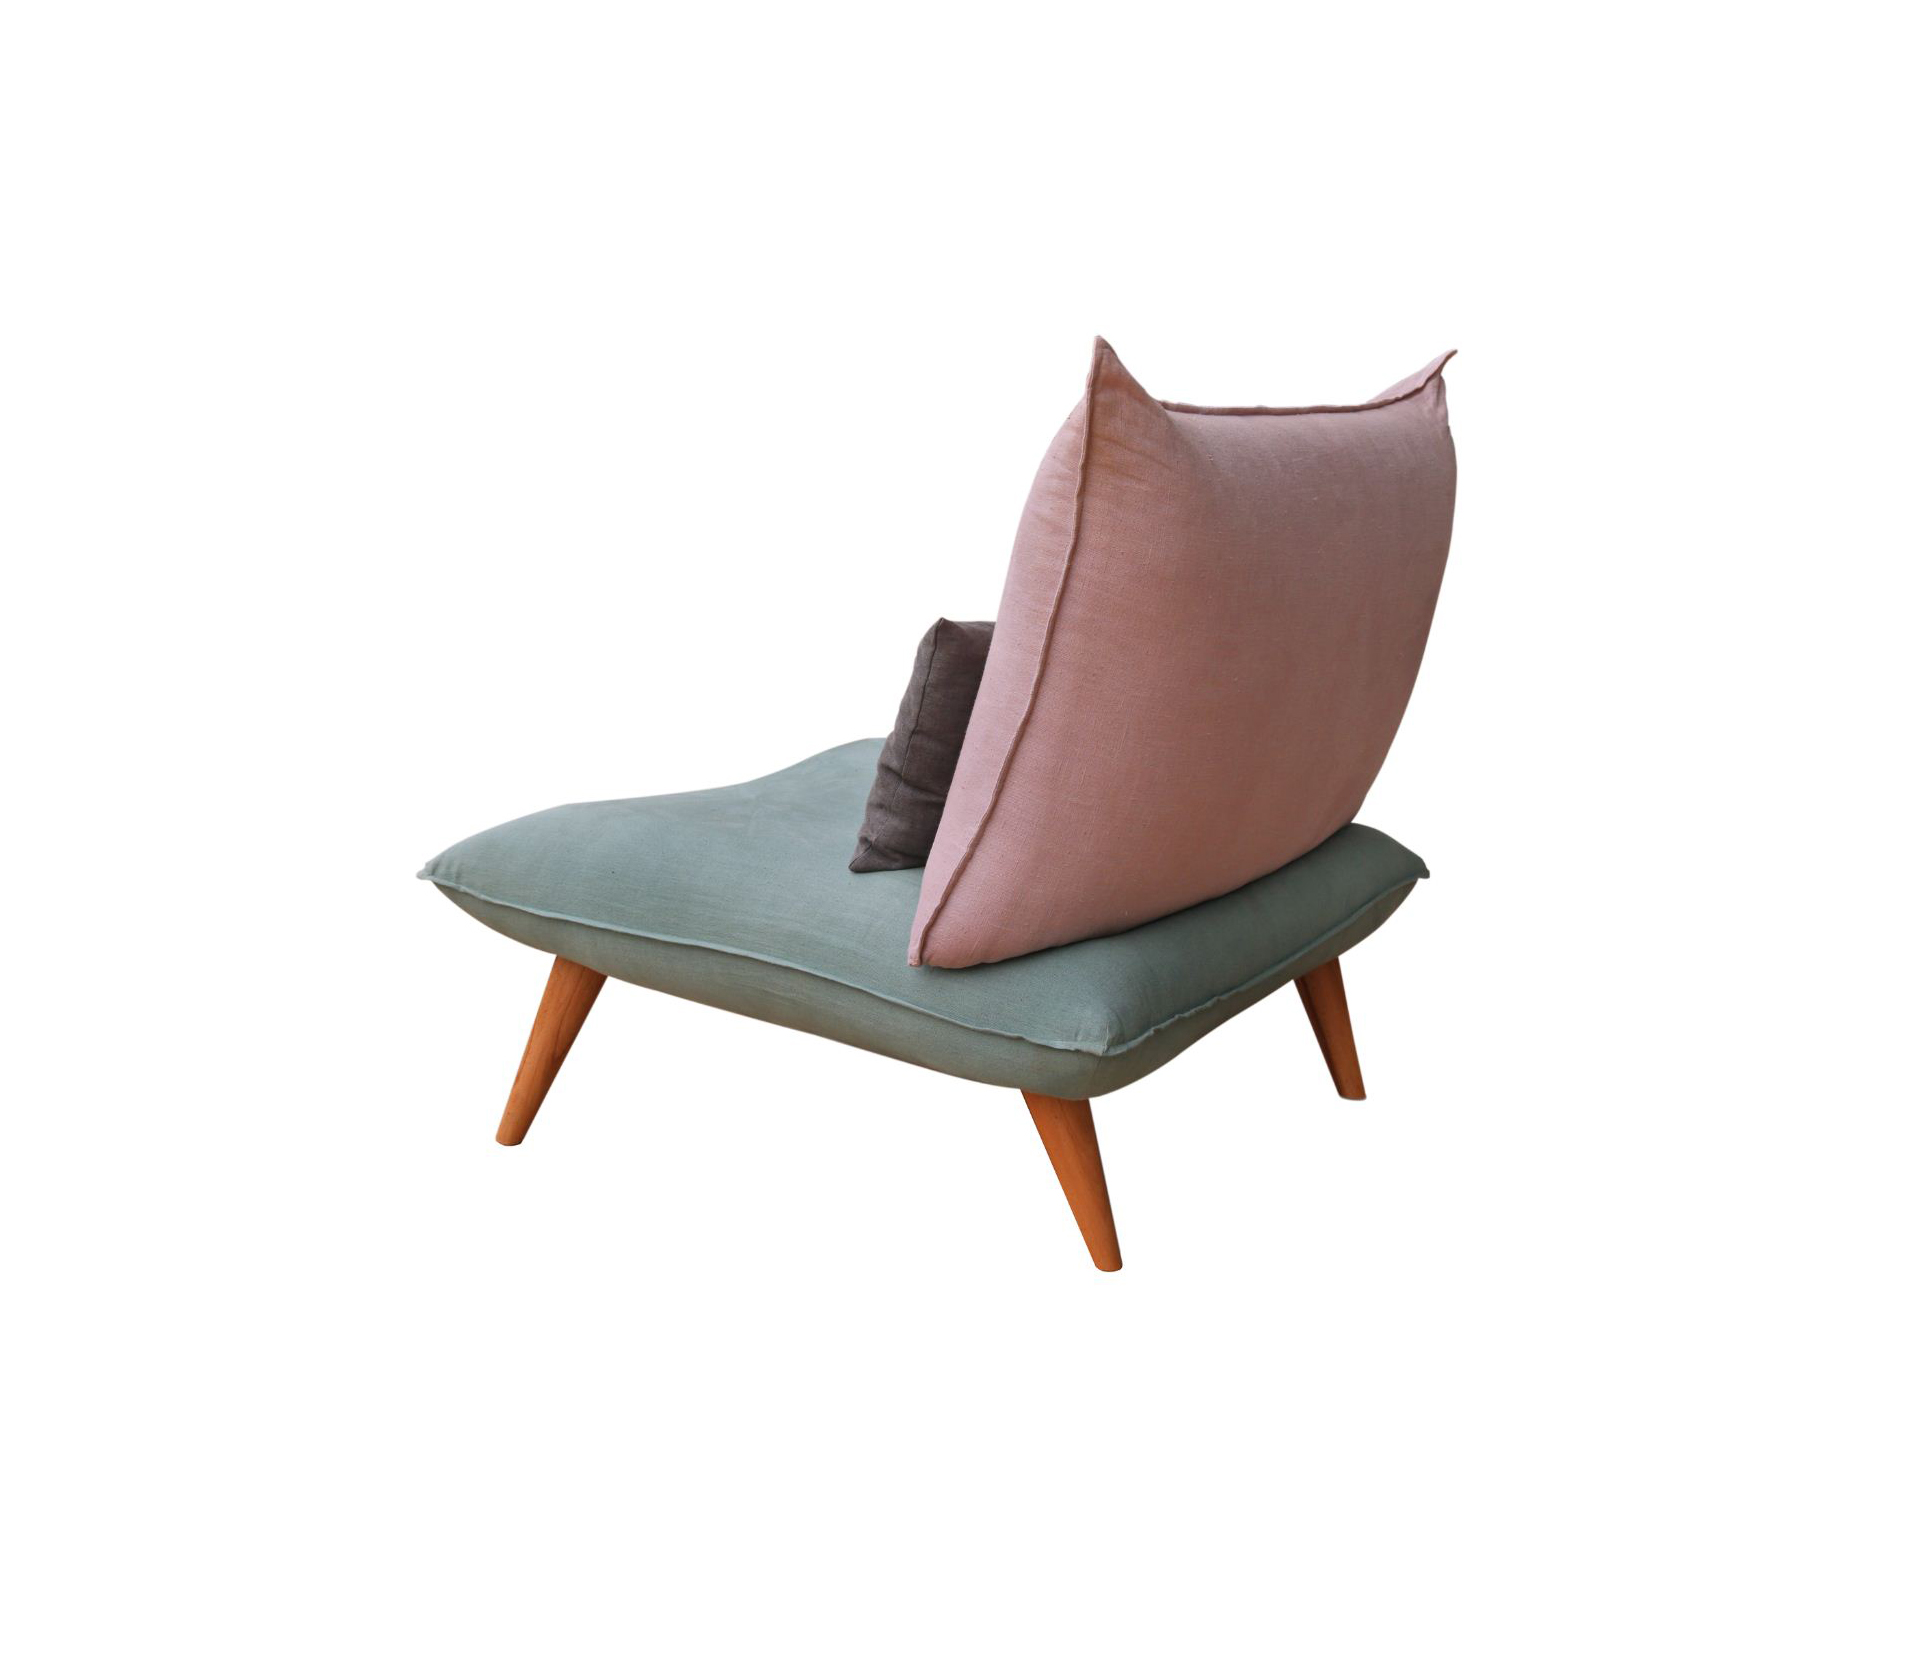 Fauteuil Bô M by Fred Hernandez